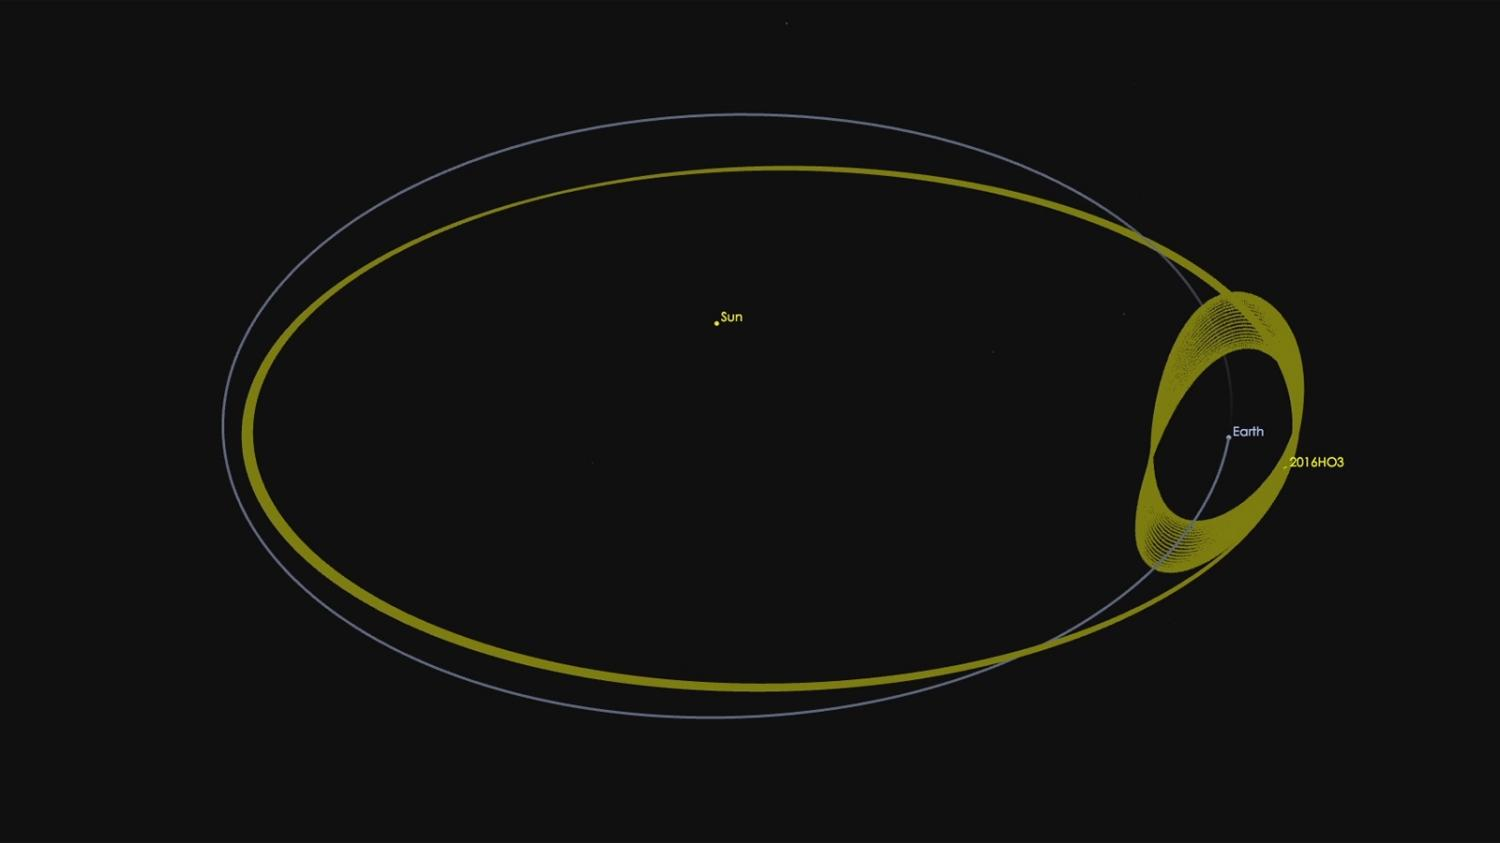 asteroid circling earth - photo #44